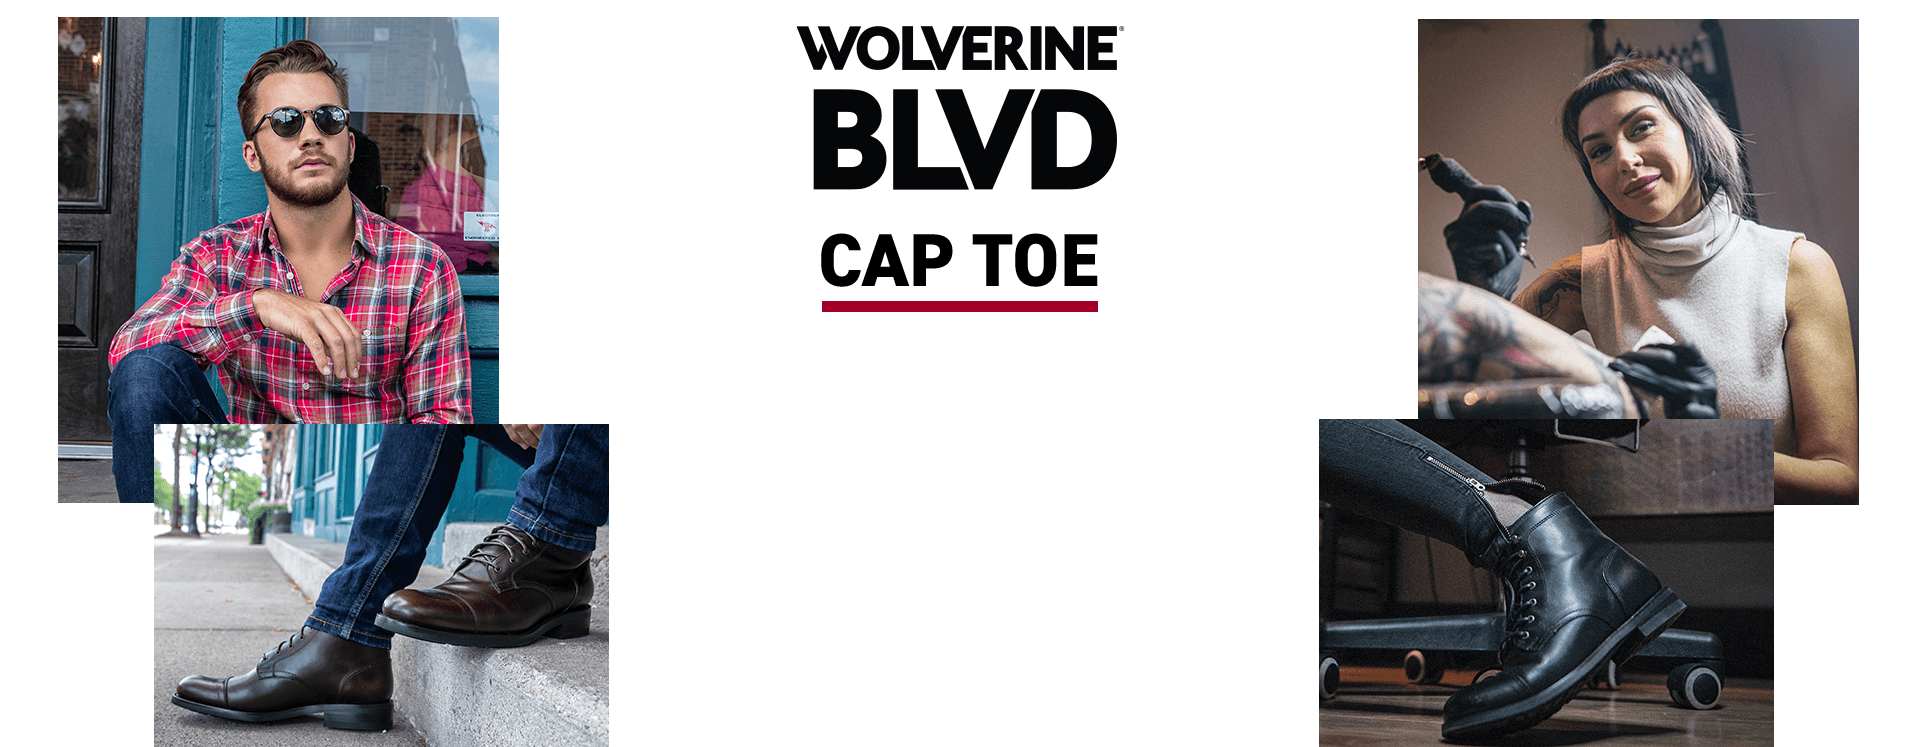 Collage of Wovlerine BLVD Cap Toe boots and a tattoo artist who wears them.